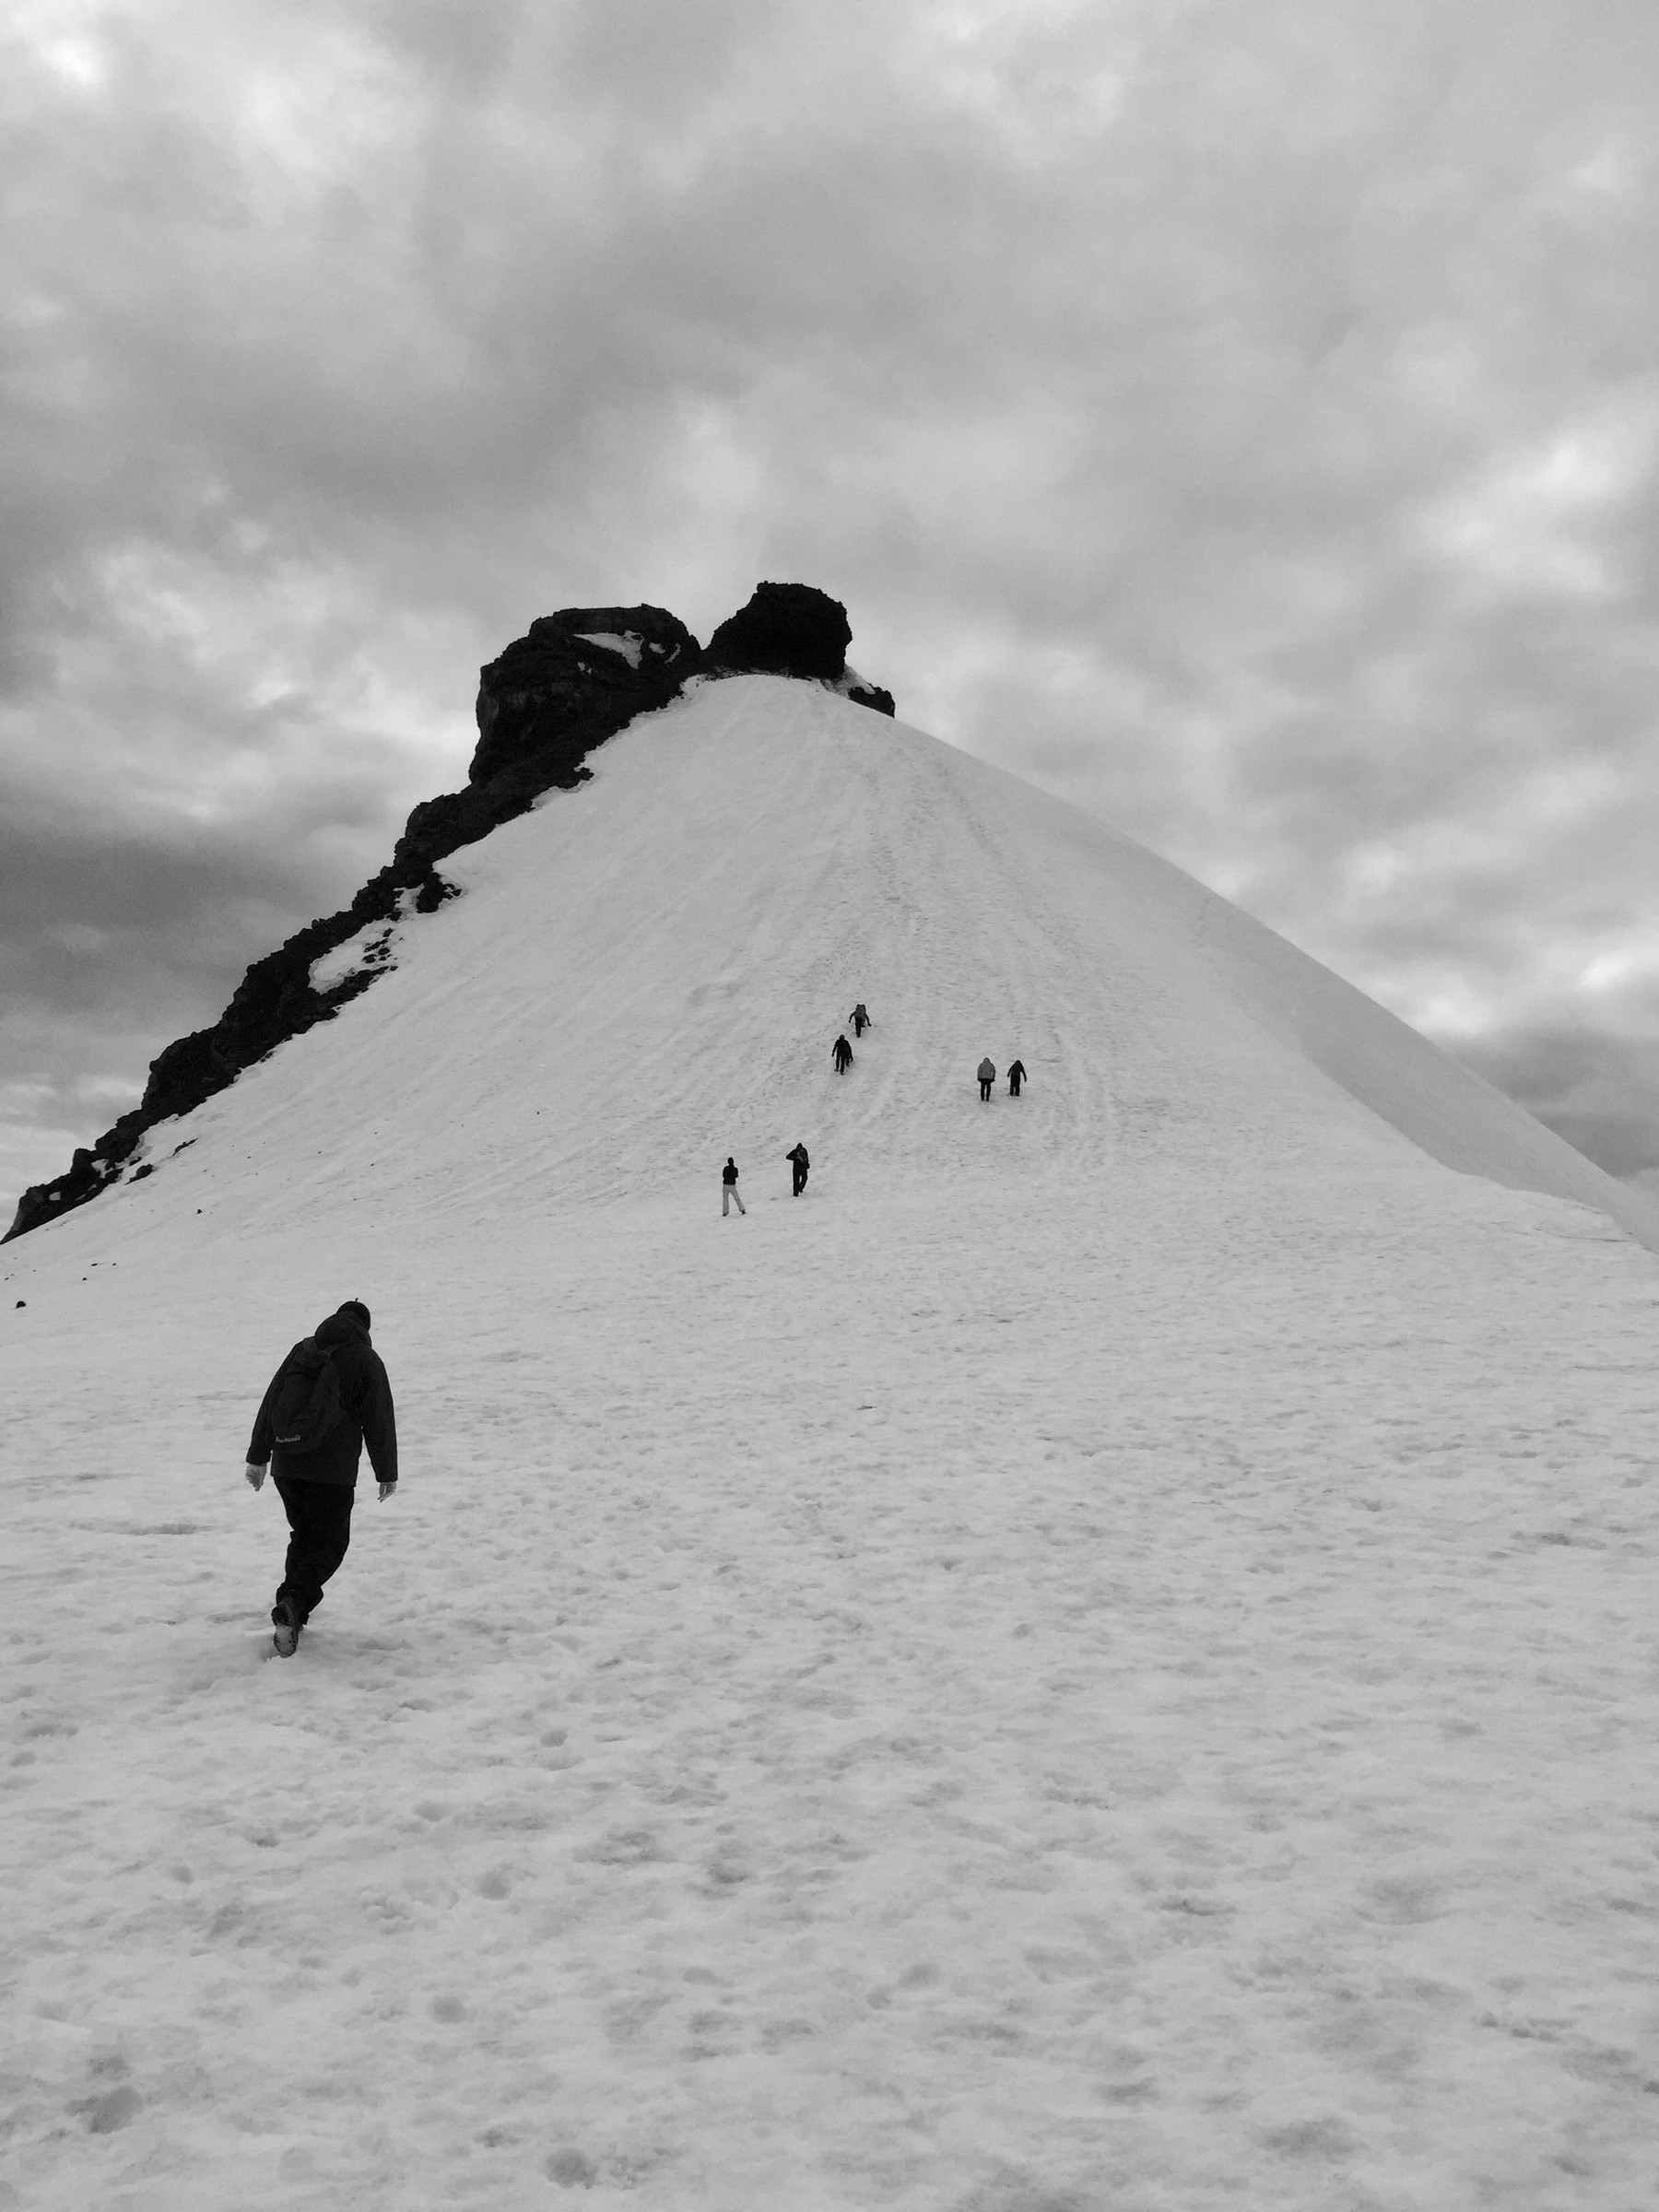 A group of people walk up the peak